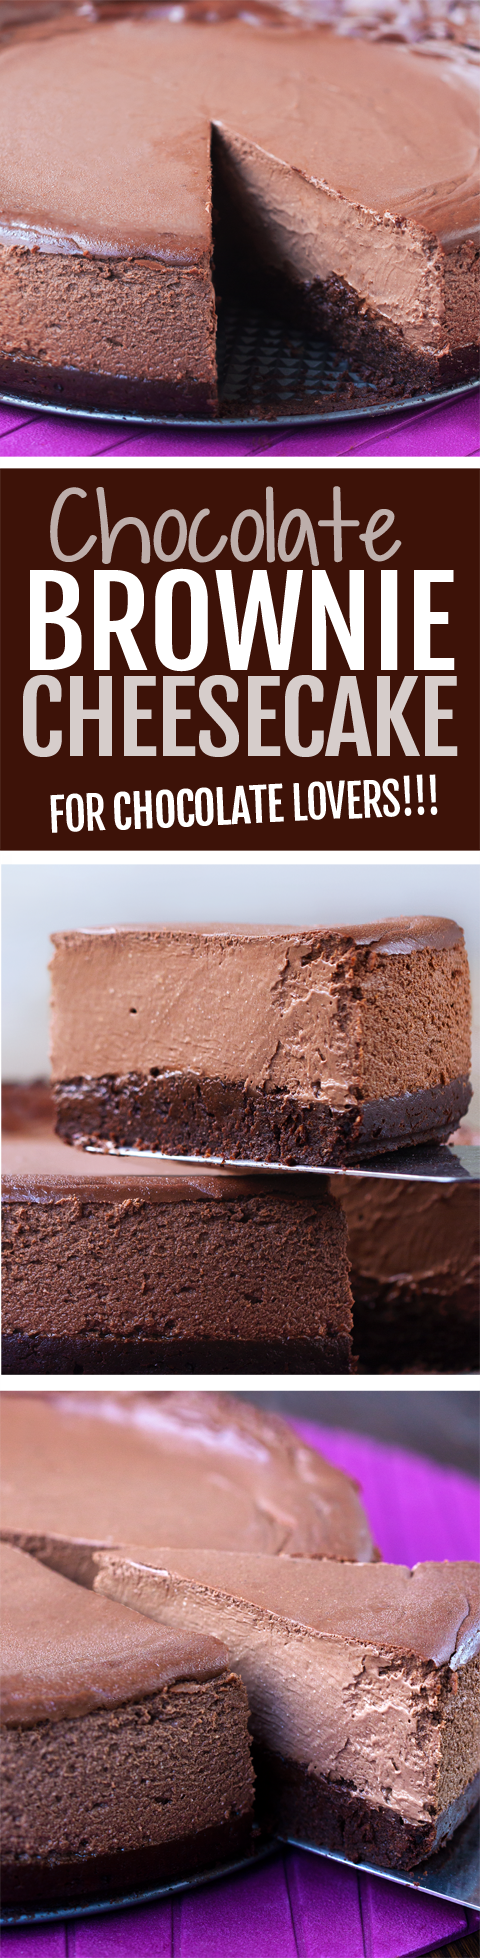 This rich chocolate brownie cheesecake recipe is 100 times better than anything from Cheesecake Factory!